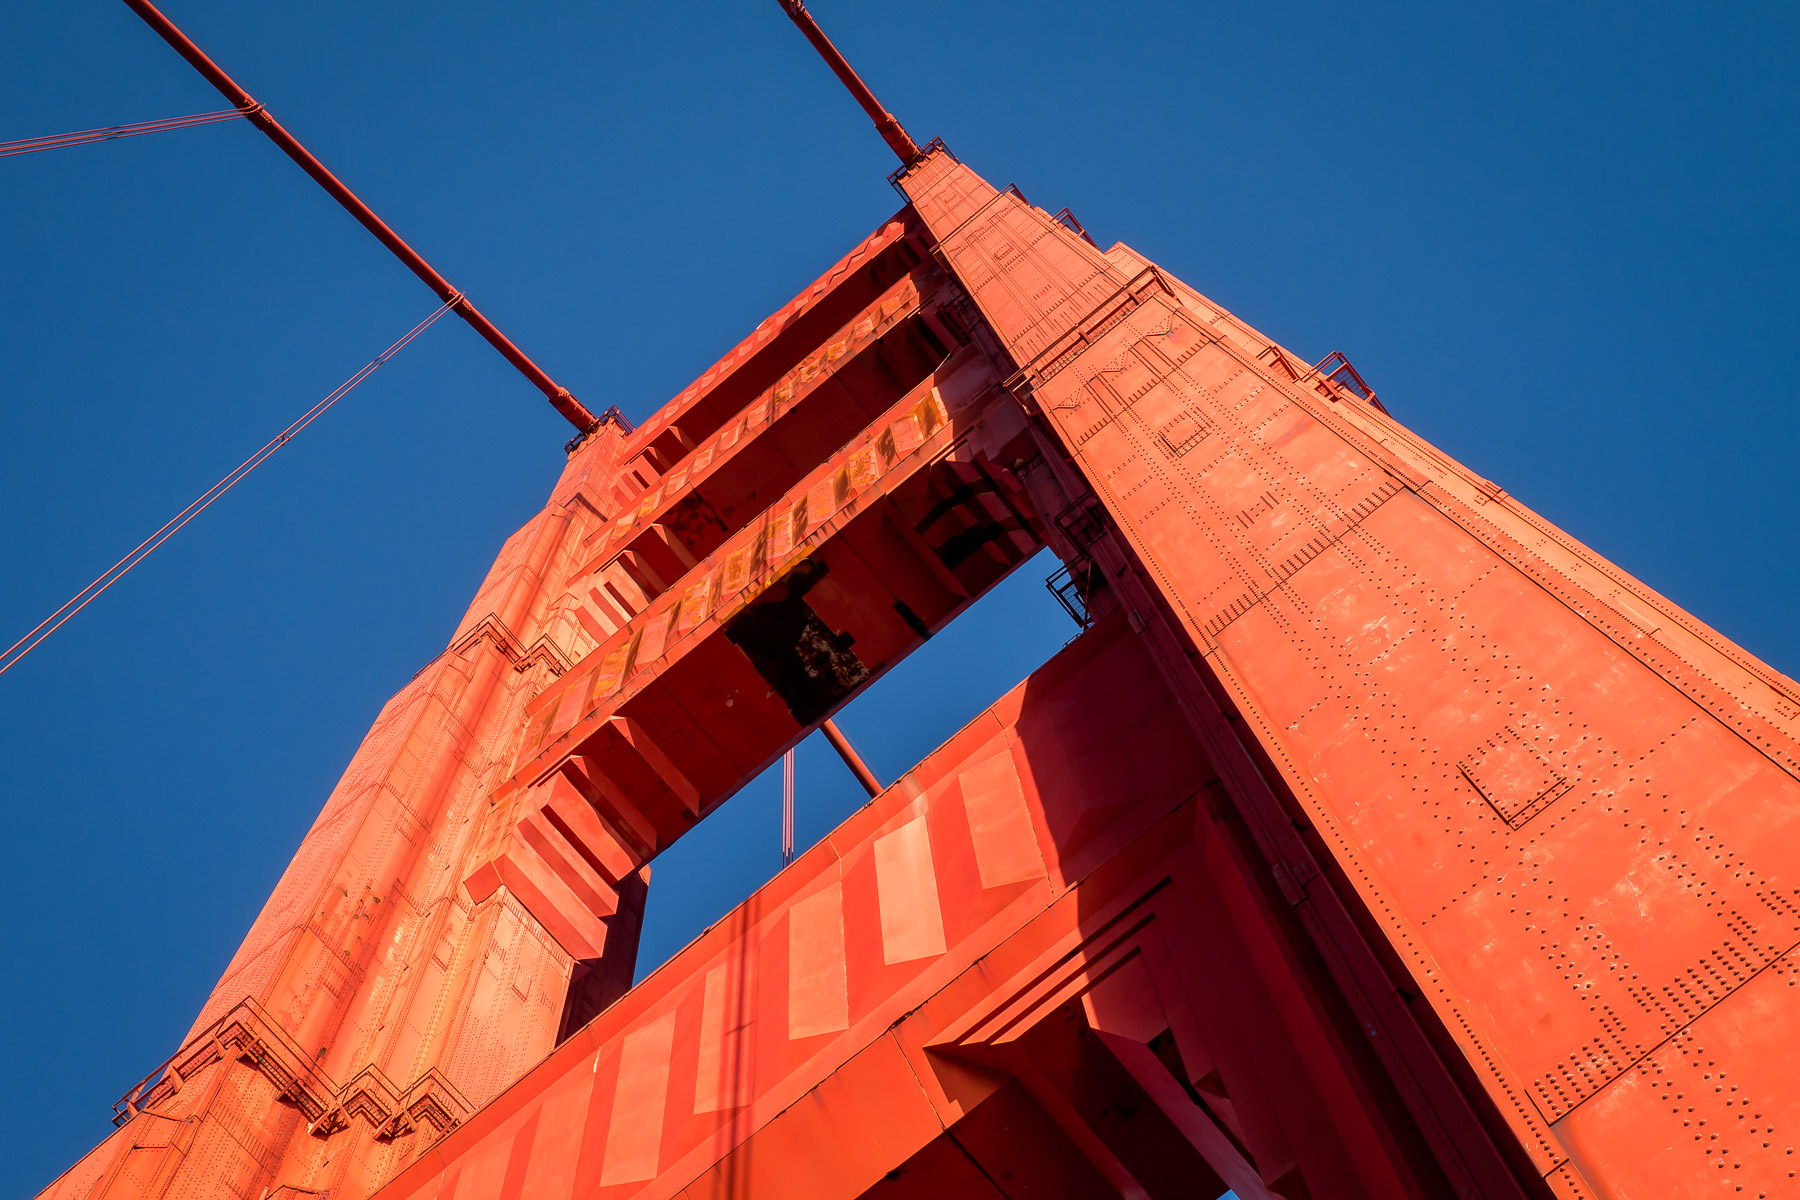 The 746-foot-tall (220 meters) south tower of San Francisco's iconic Golden Gate Bridge.